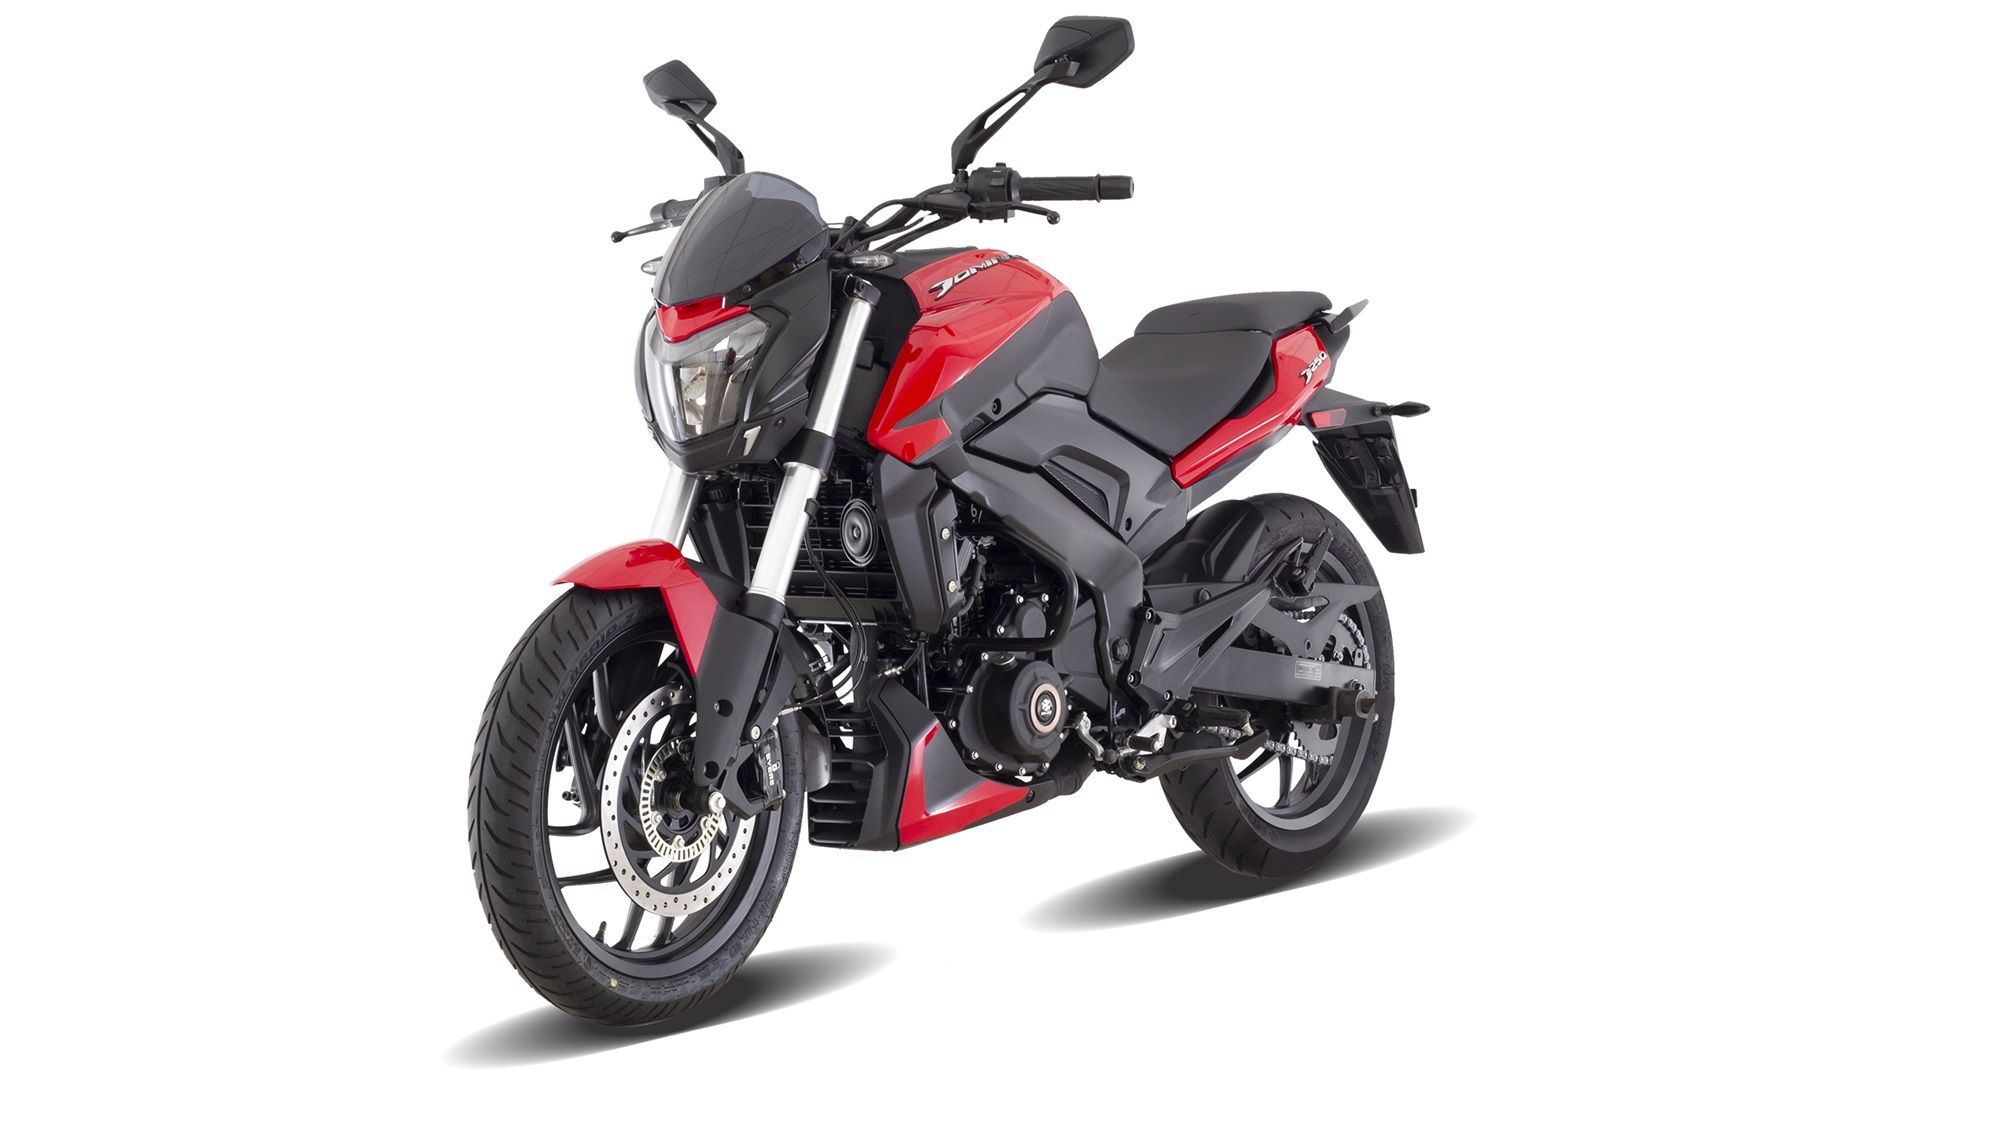 Bajaj Dominar 250 Launched At Rs 1 60 Lakh Makes Dominar Brand More Affordable Bajaj Auto Product Launch Motorcycle News